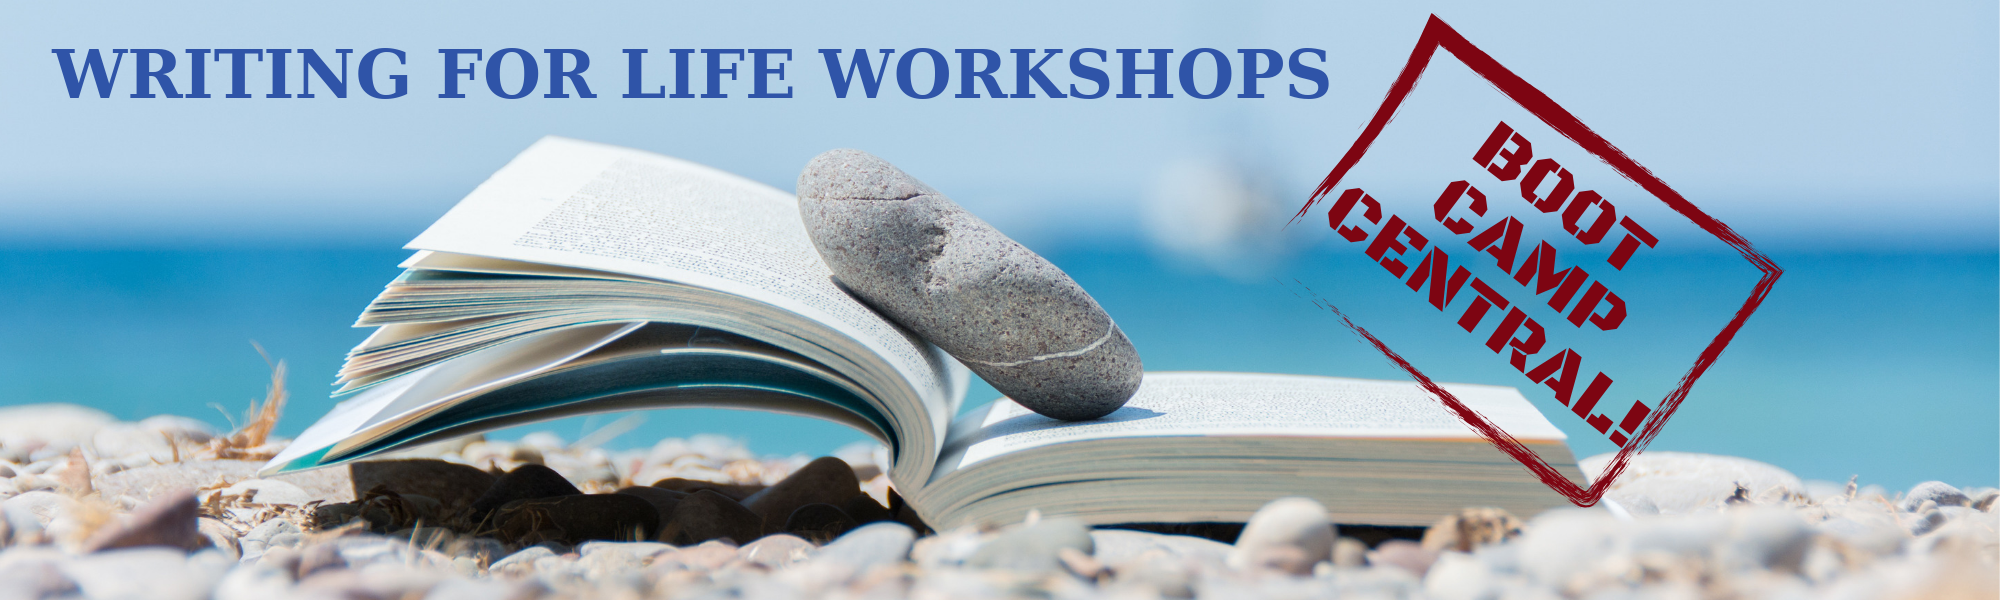 Writing for Life Workshops